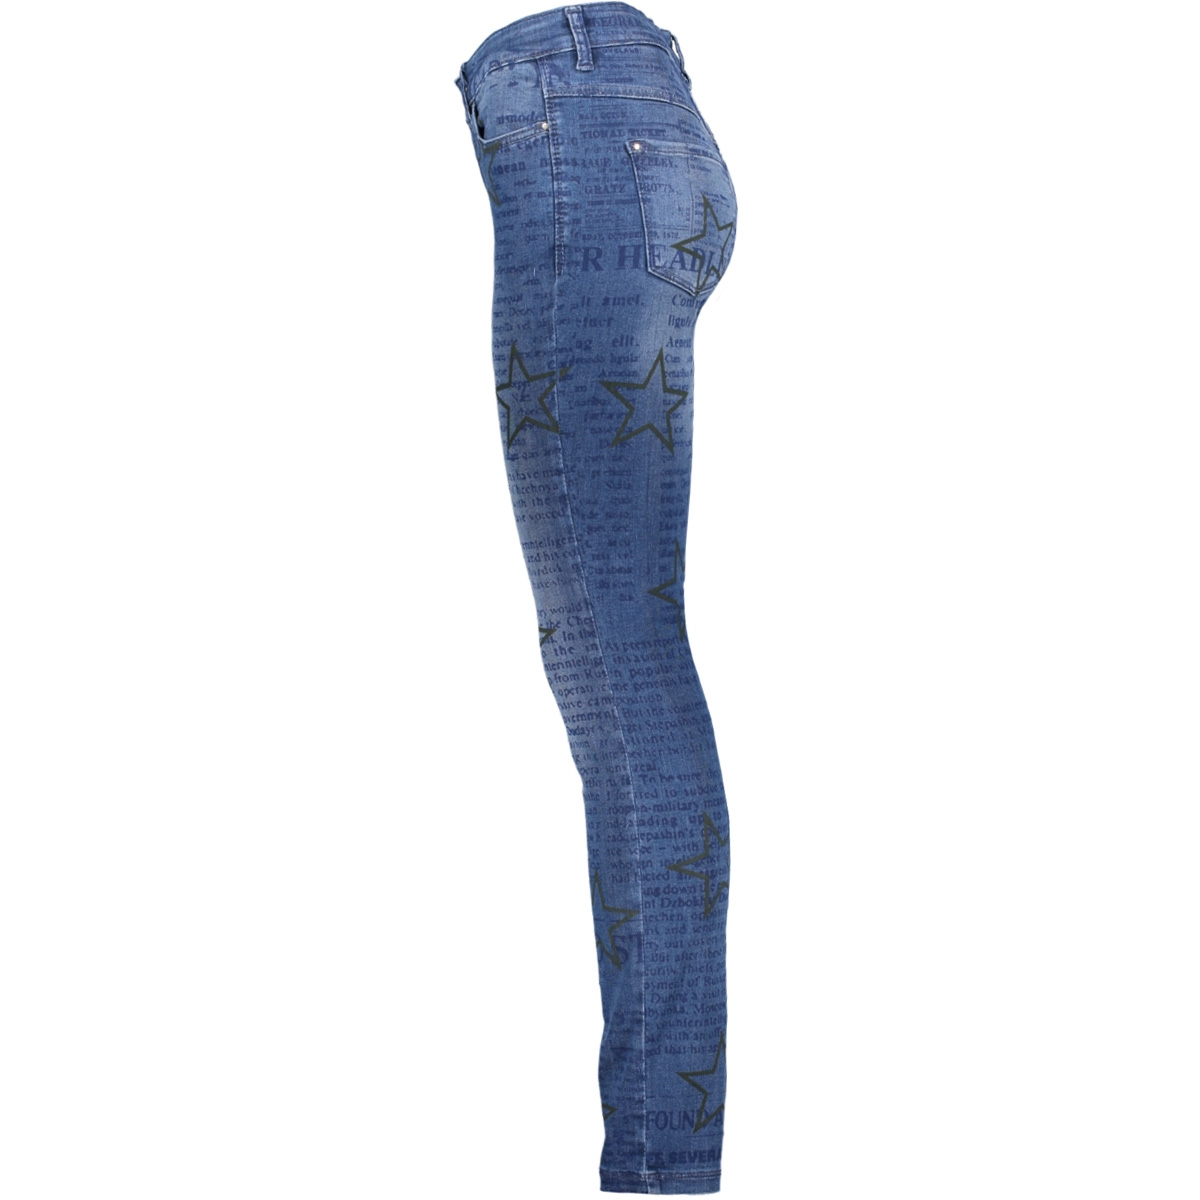 5402 94 0355 mac jeans mid blue letter